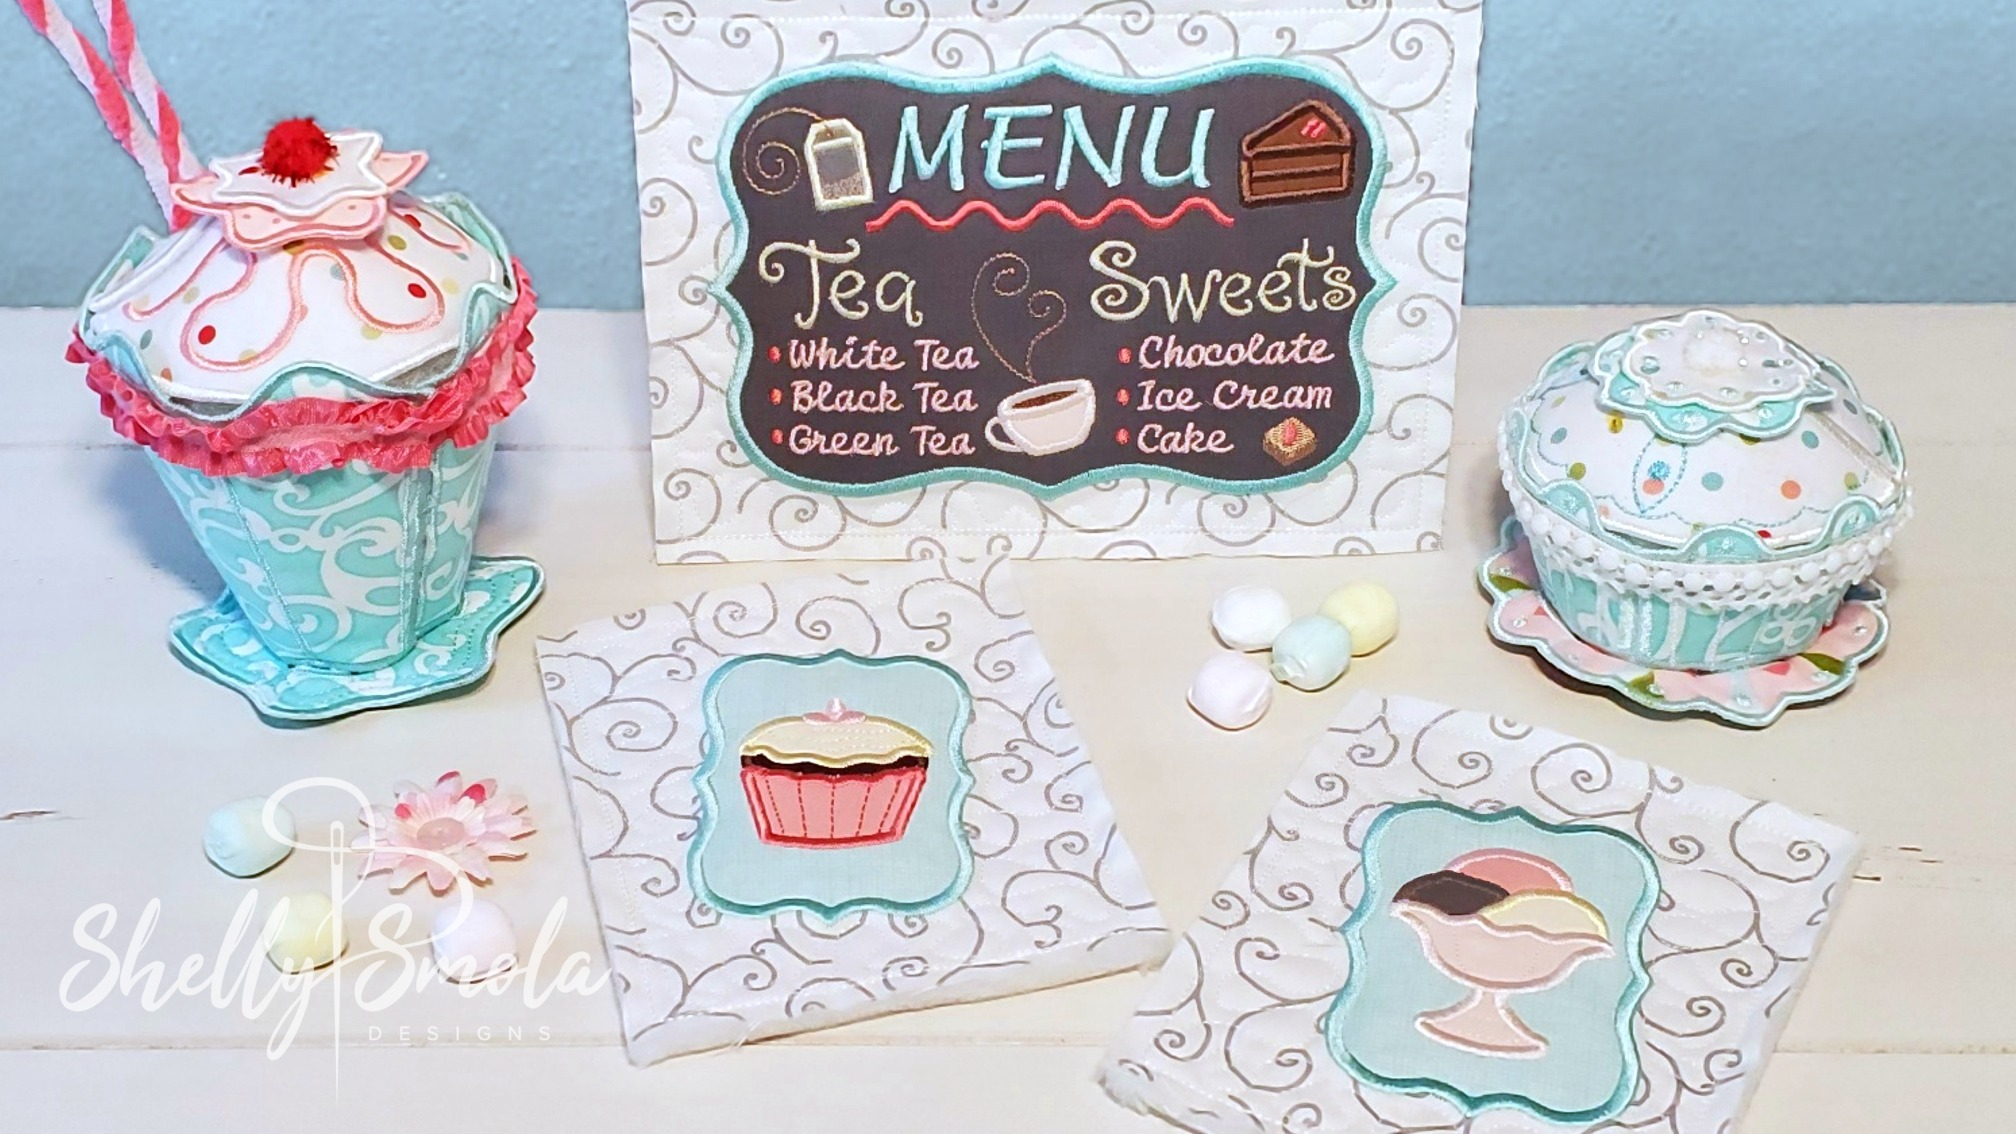 Embroidered Tea Time Quilt Sundae Cupcake and Menu